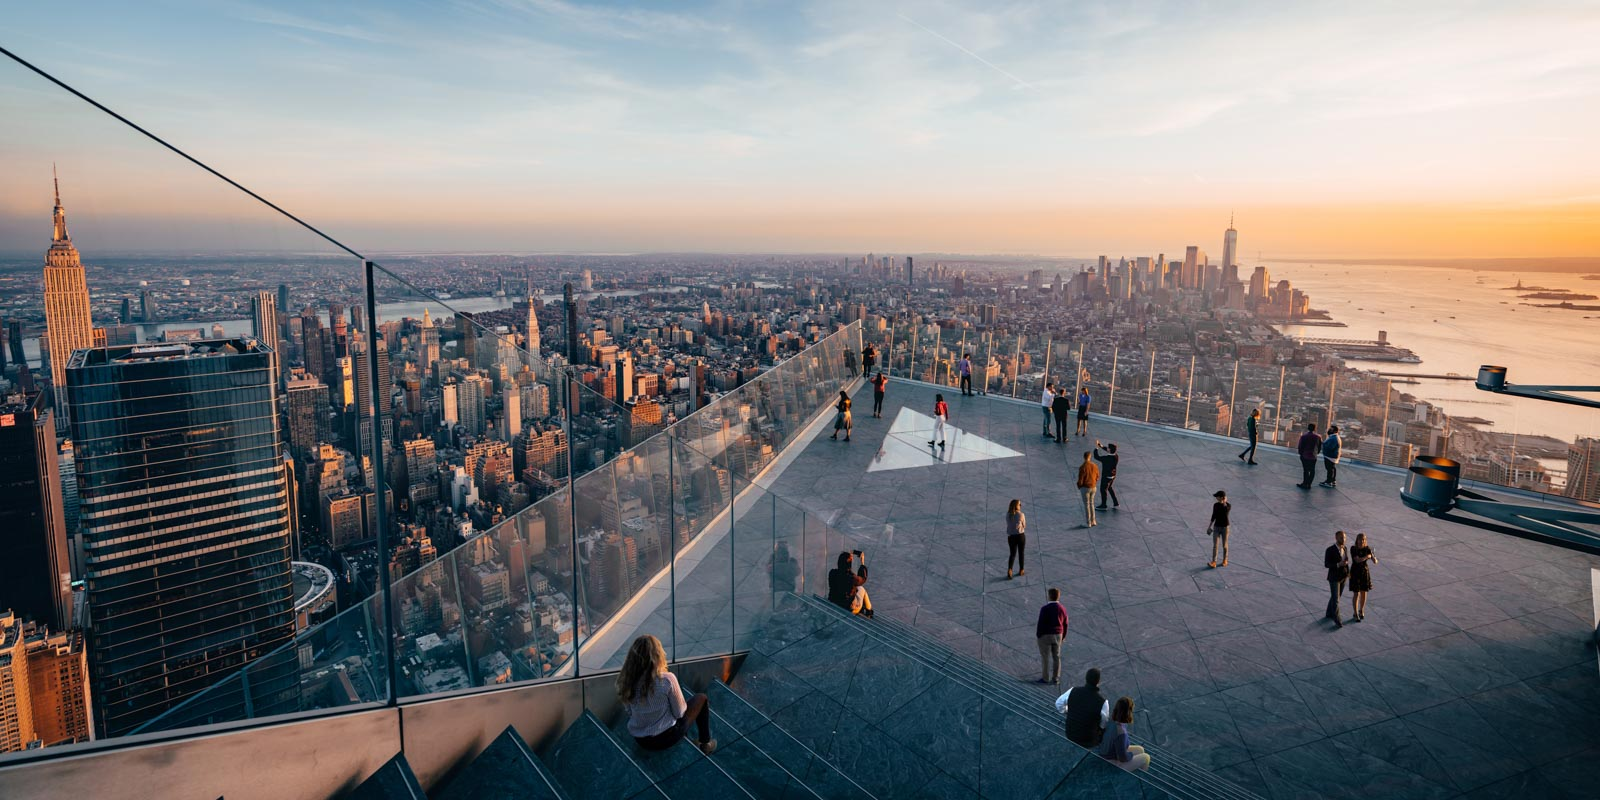 Celebrating New York's skylines and vistas